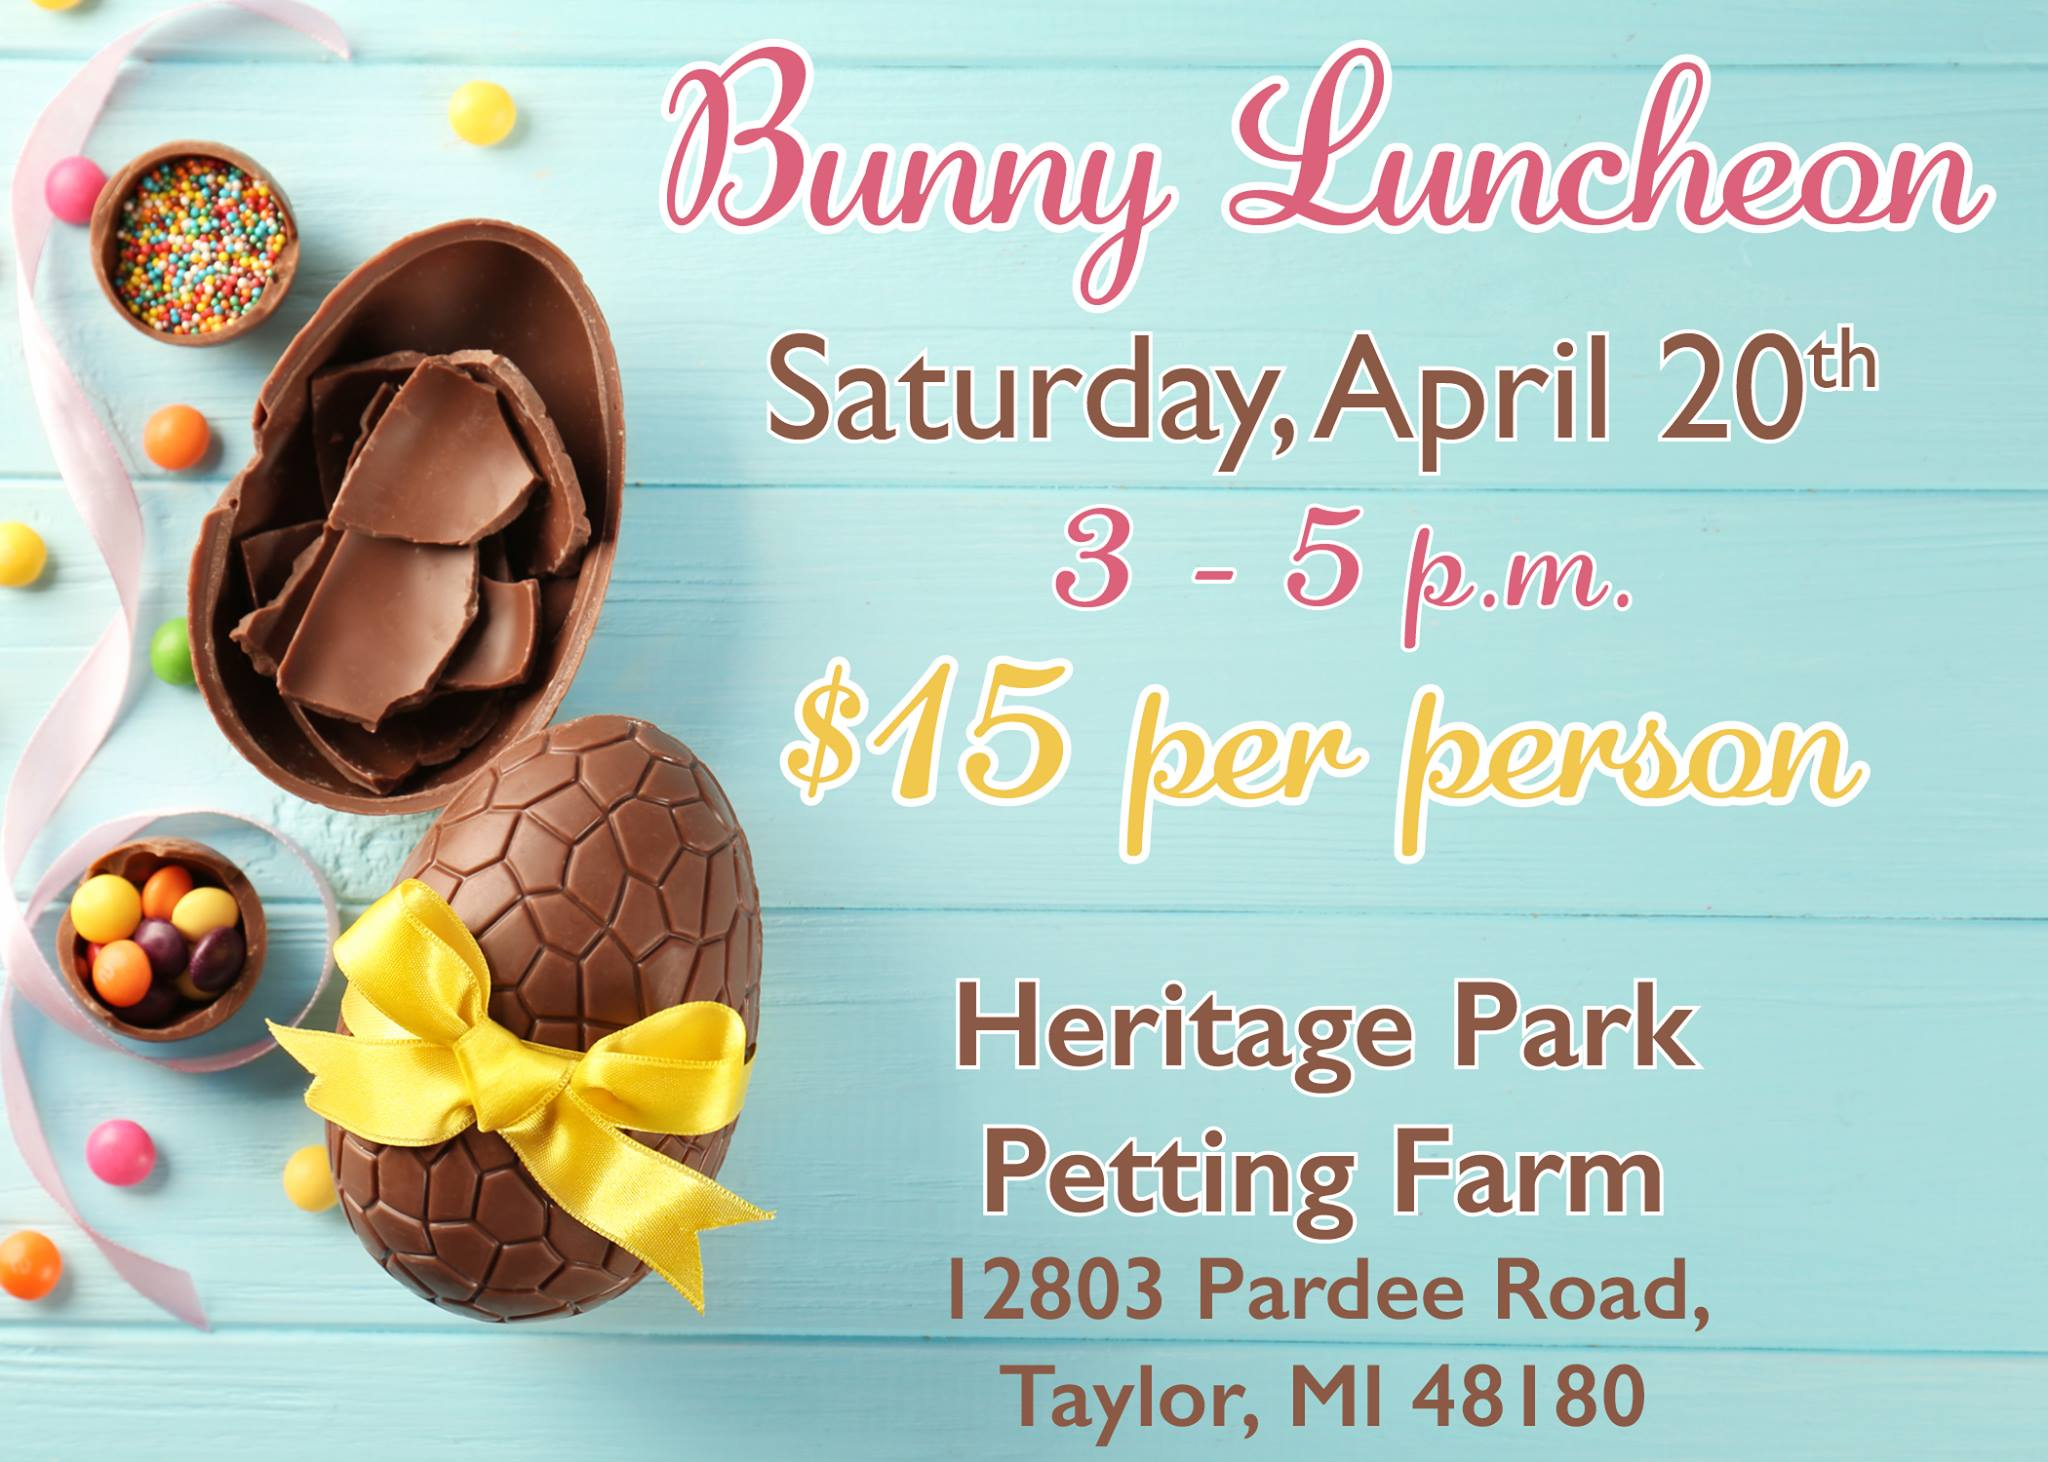 BUNNY LUNCH 2